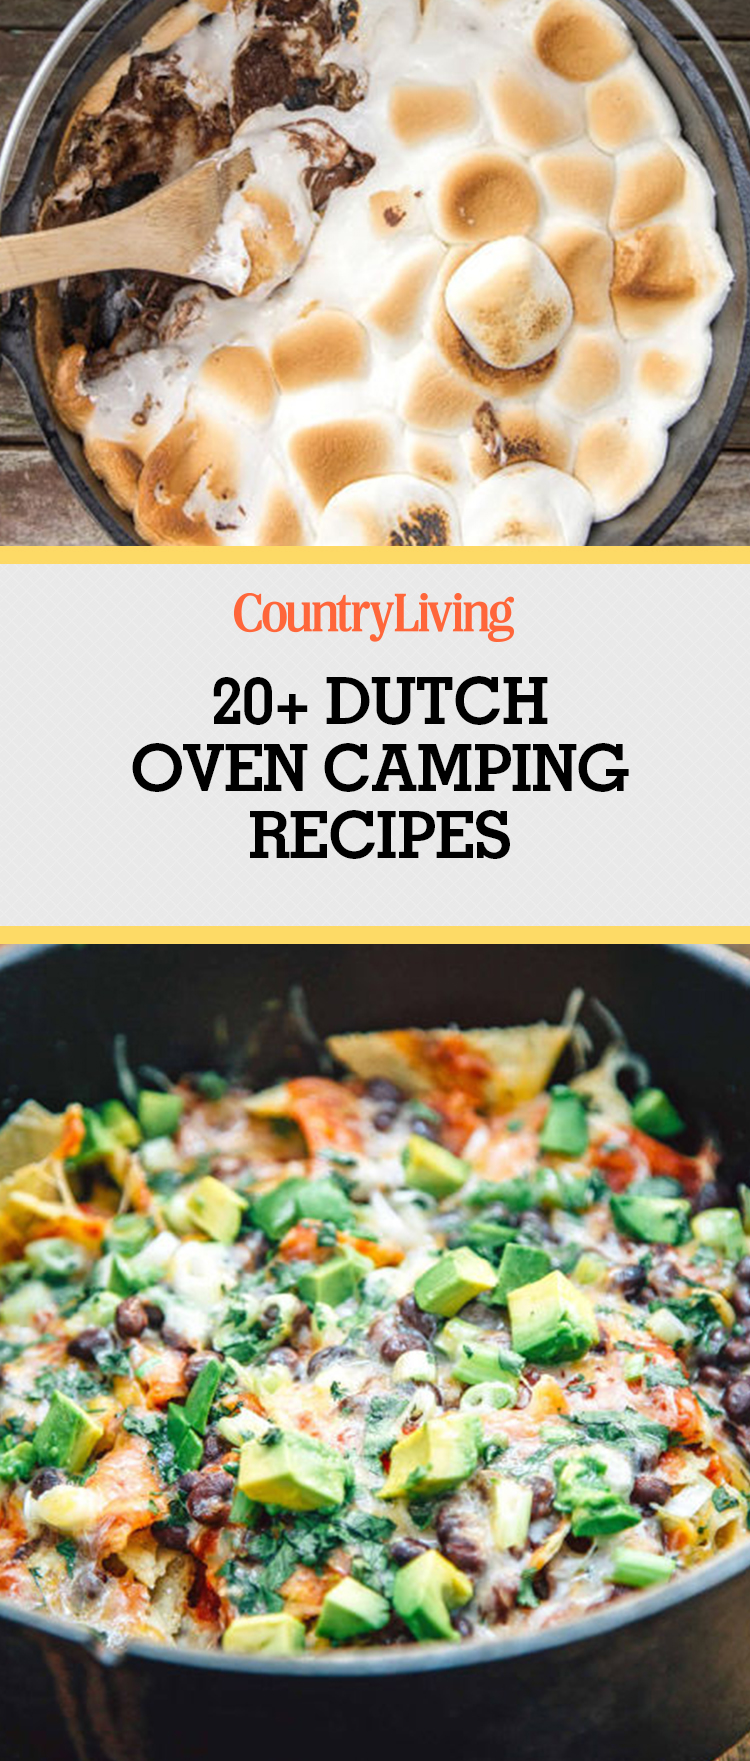 21 easy dutch oven camping recipes campfire cooking with for Healthy dutch oven camping recipes